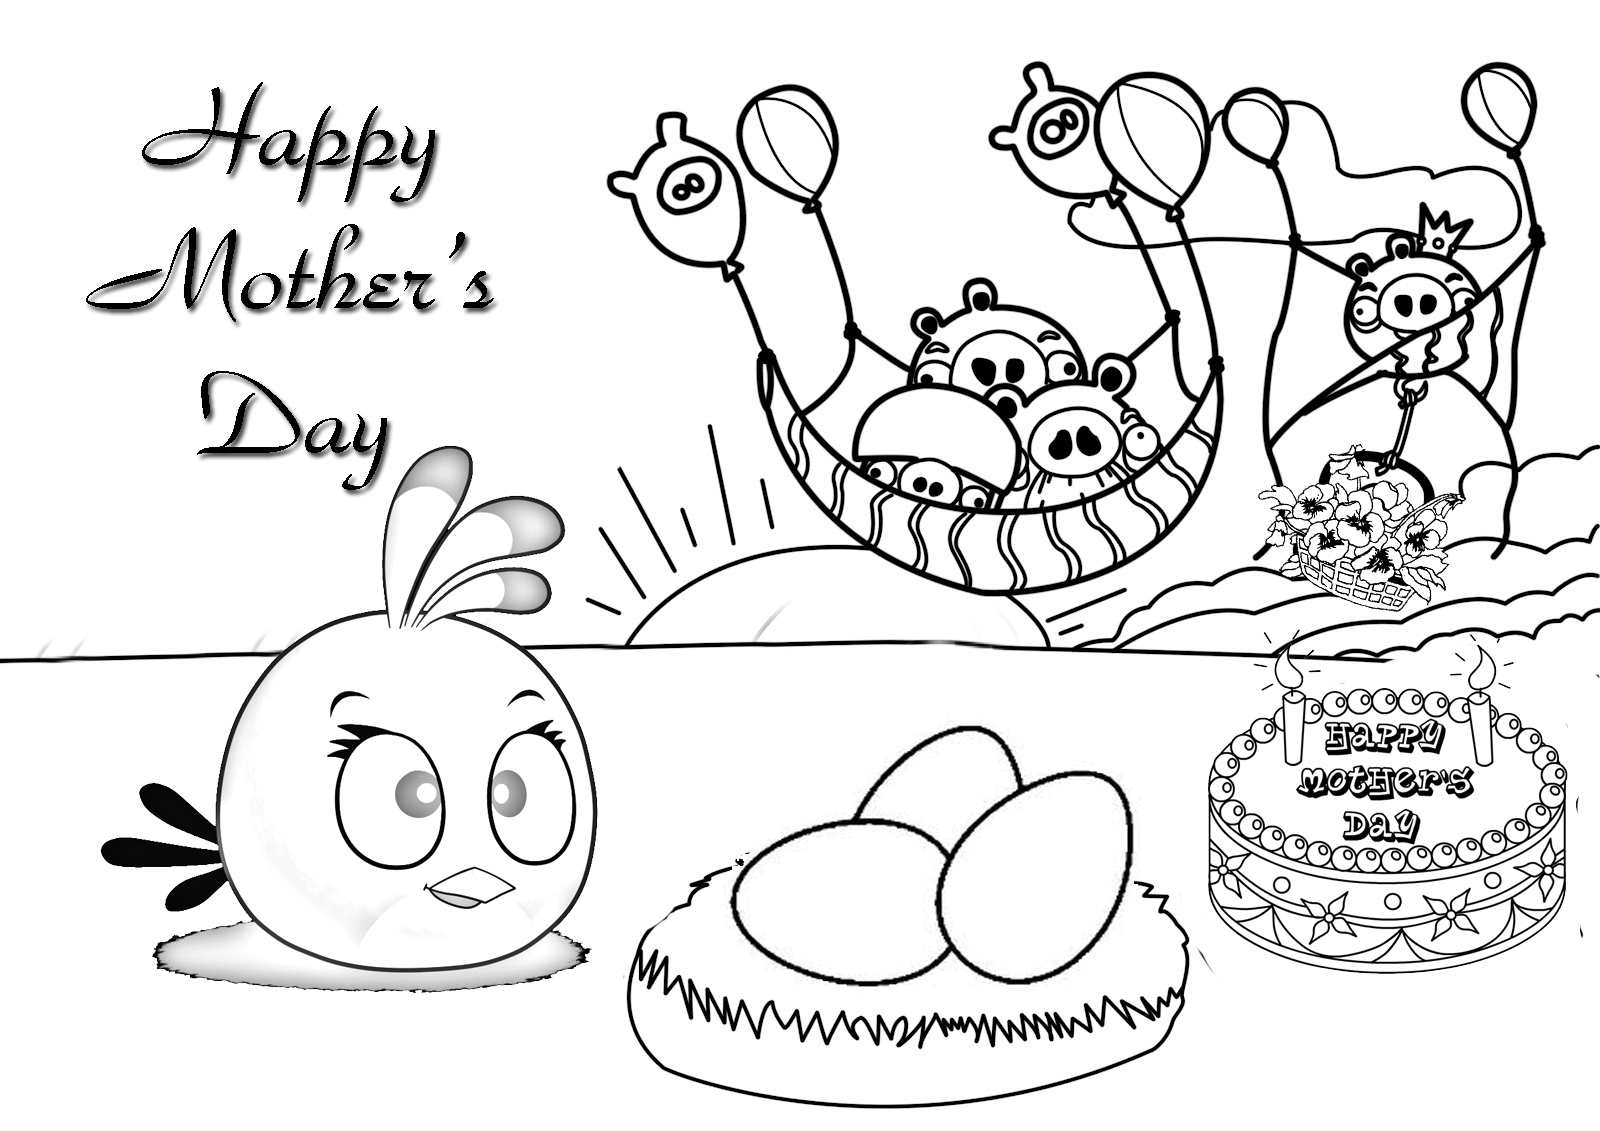 Happy Mother's day coloring pages Angry Birds